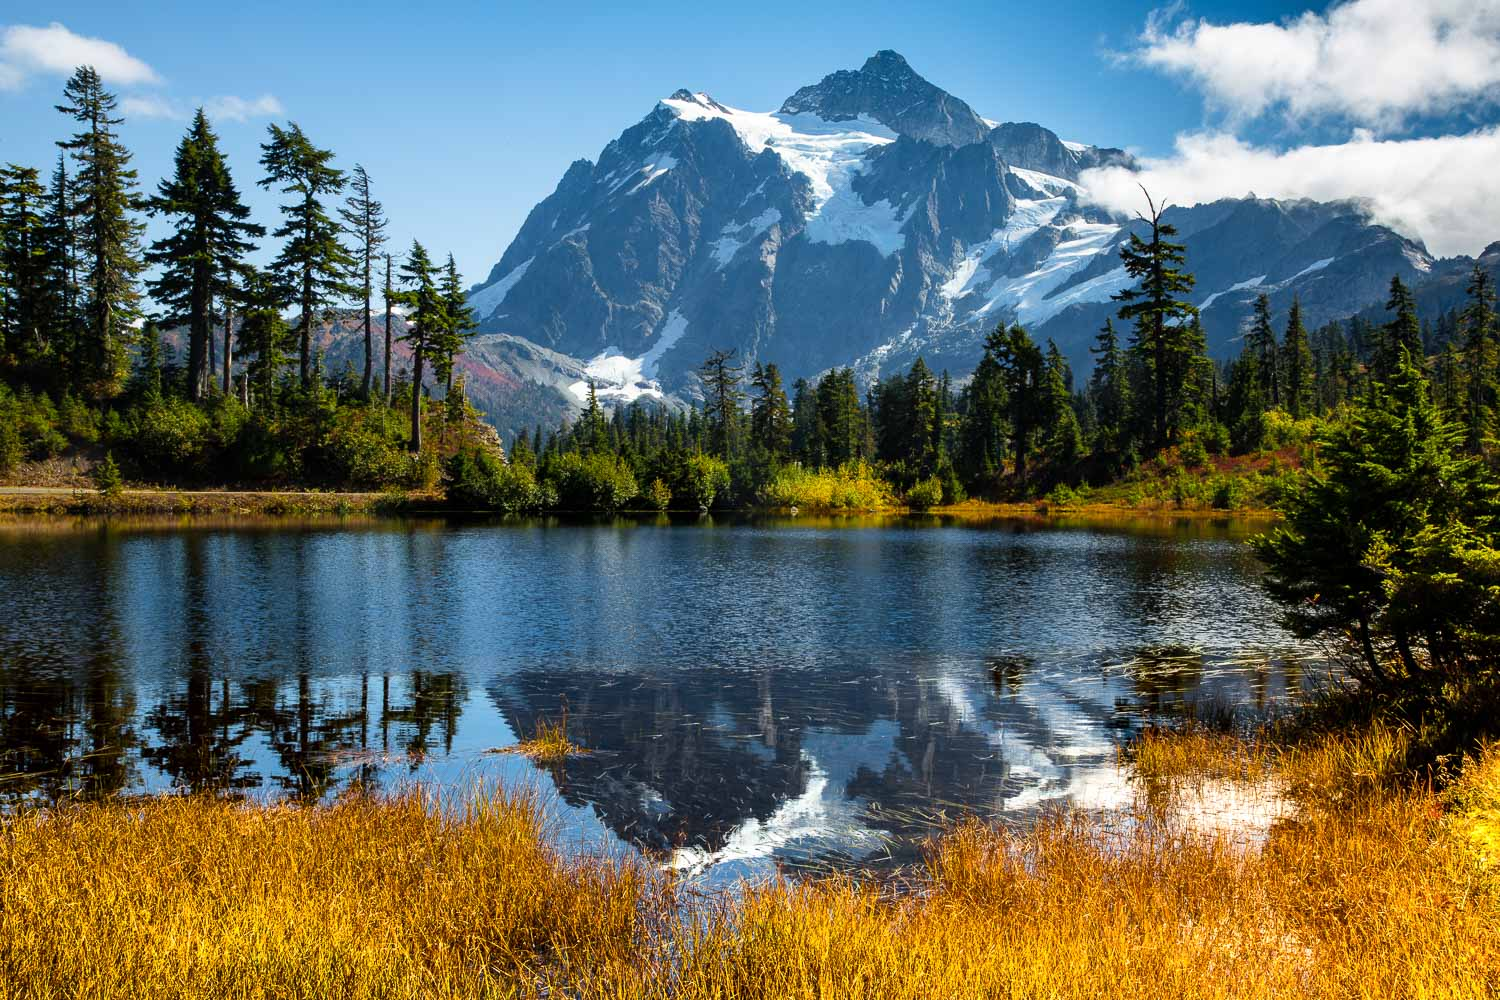 Mt. Shuksan and Picture Lake, Autumn